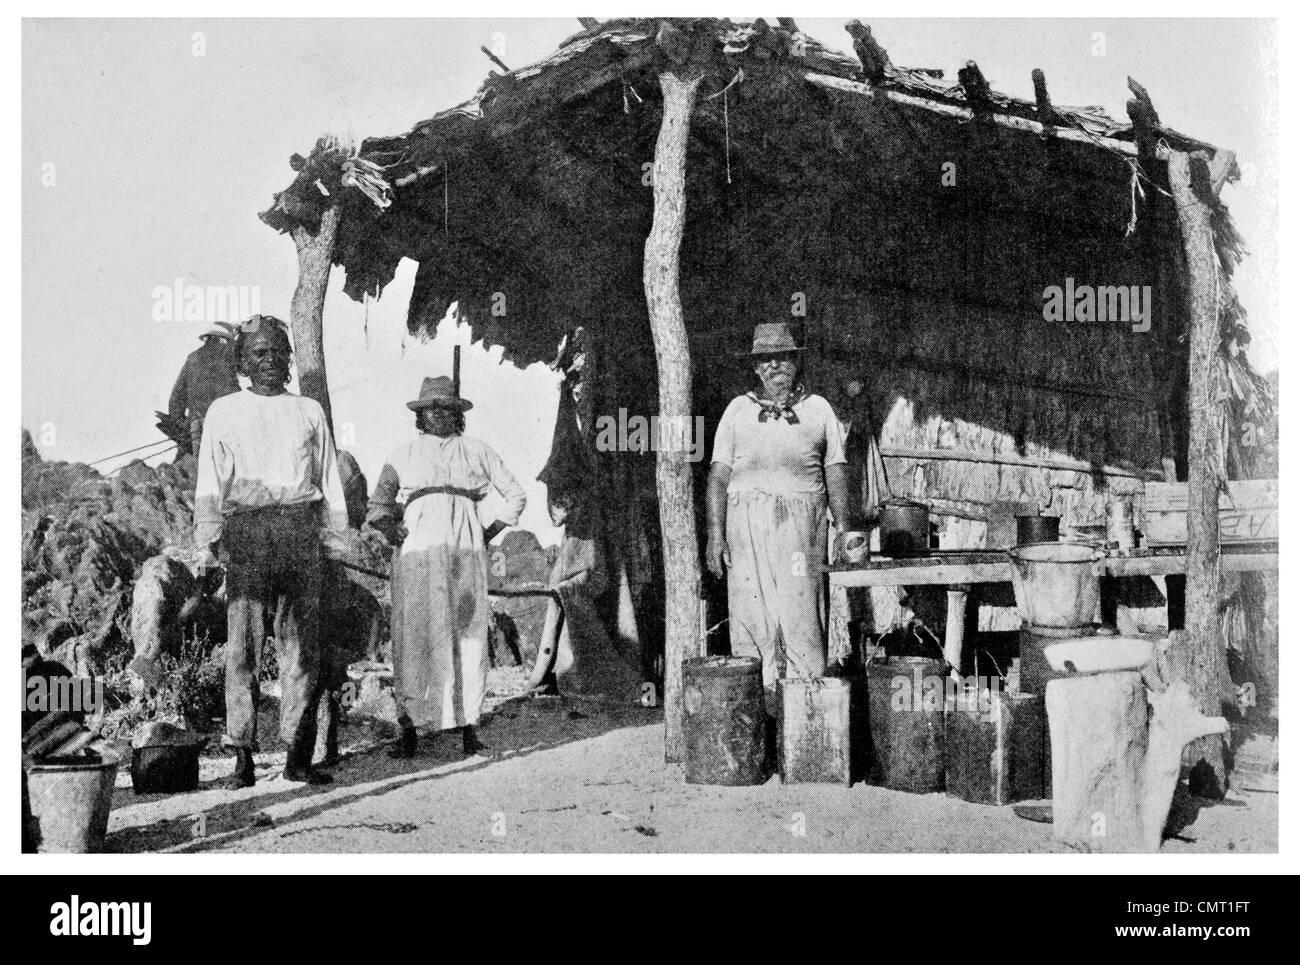 1924 Ruler of Tyra Island in his Bark Hut 16°26′41″S 123°6′9″E Western Australia - Stock Image